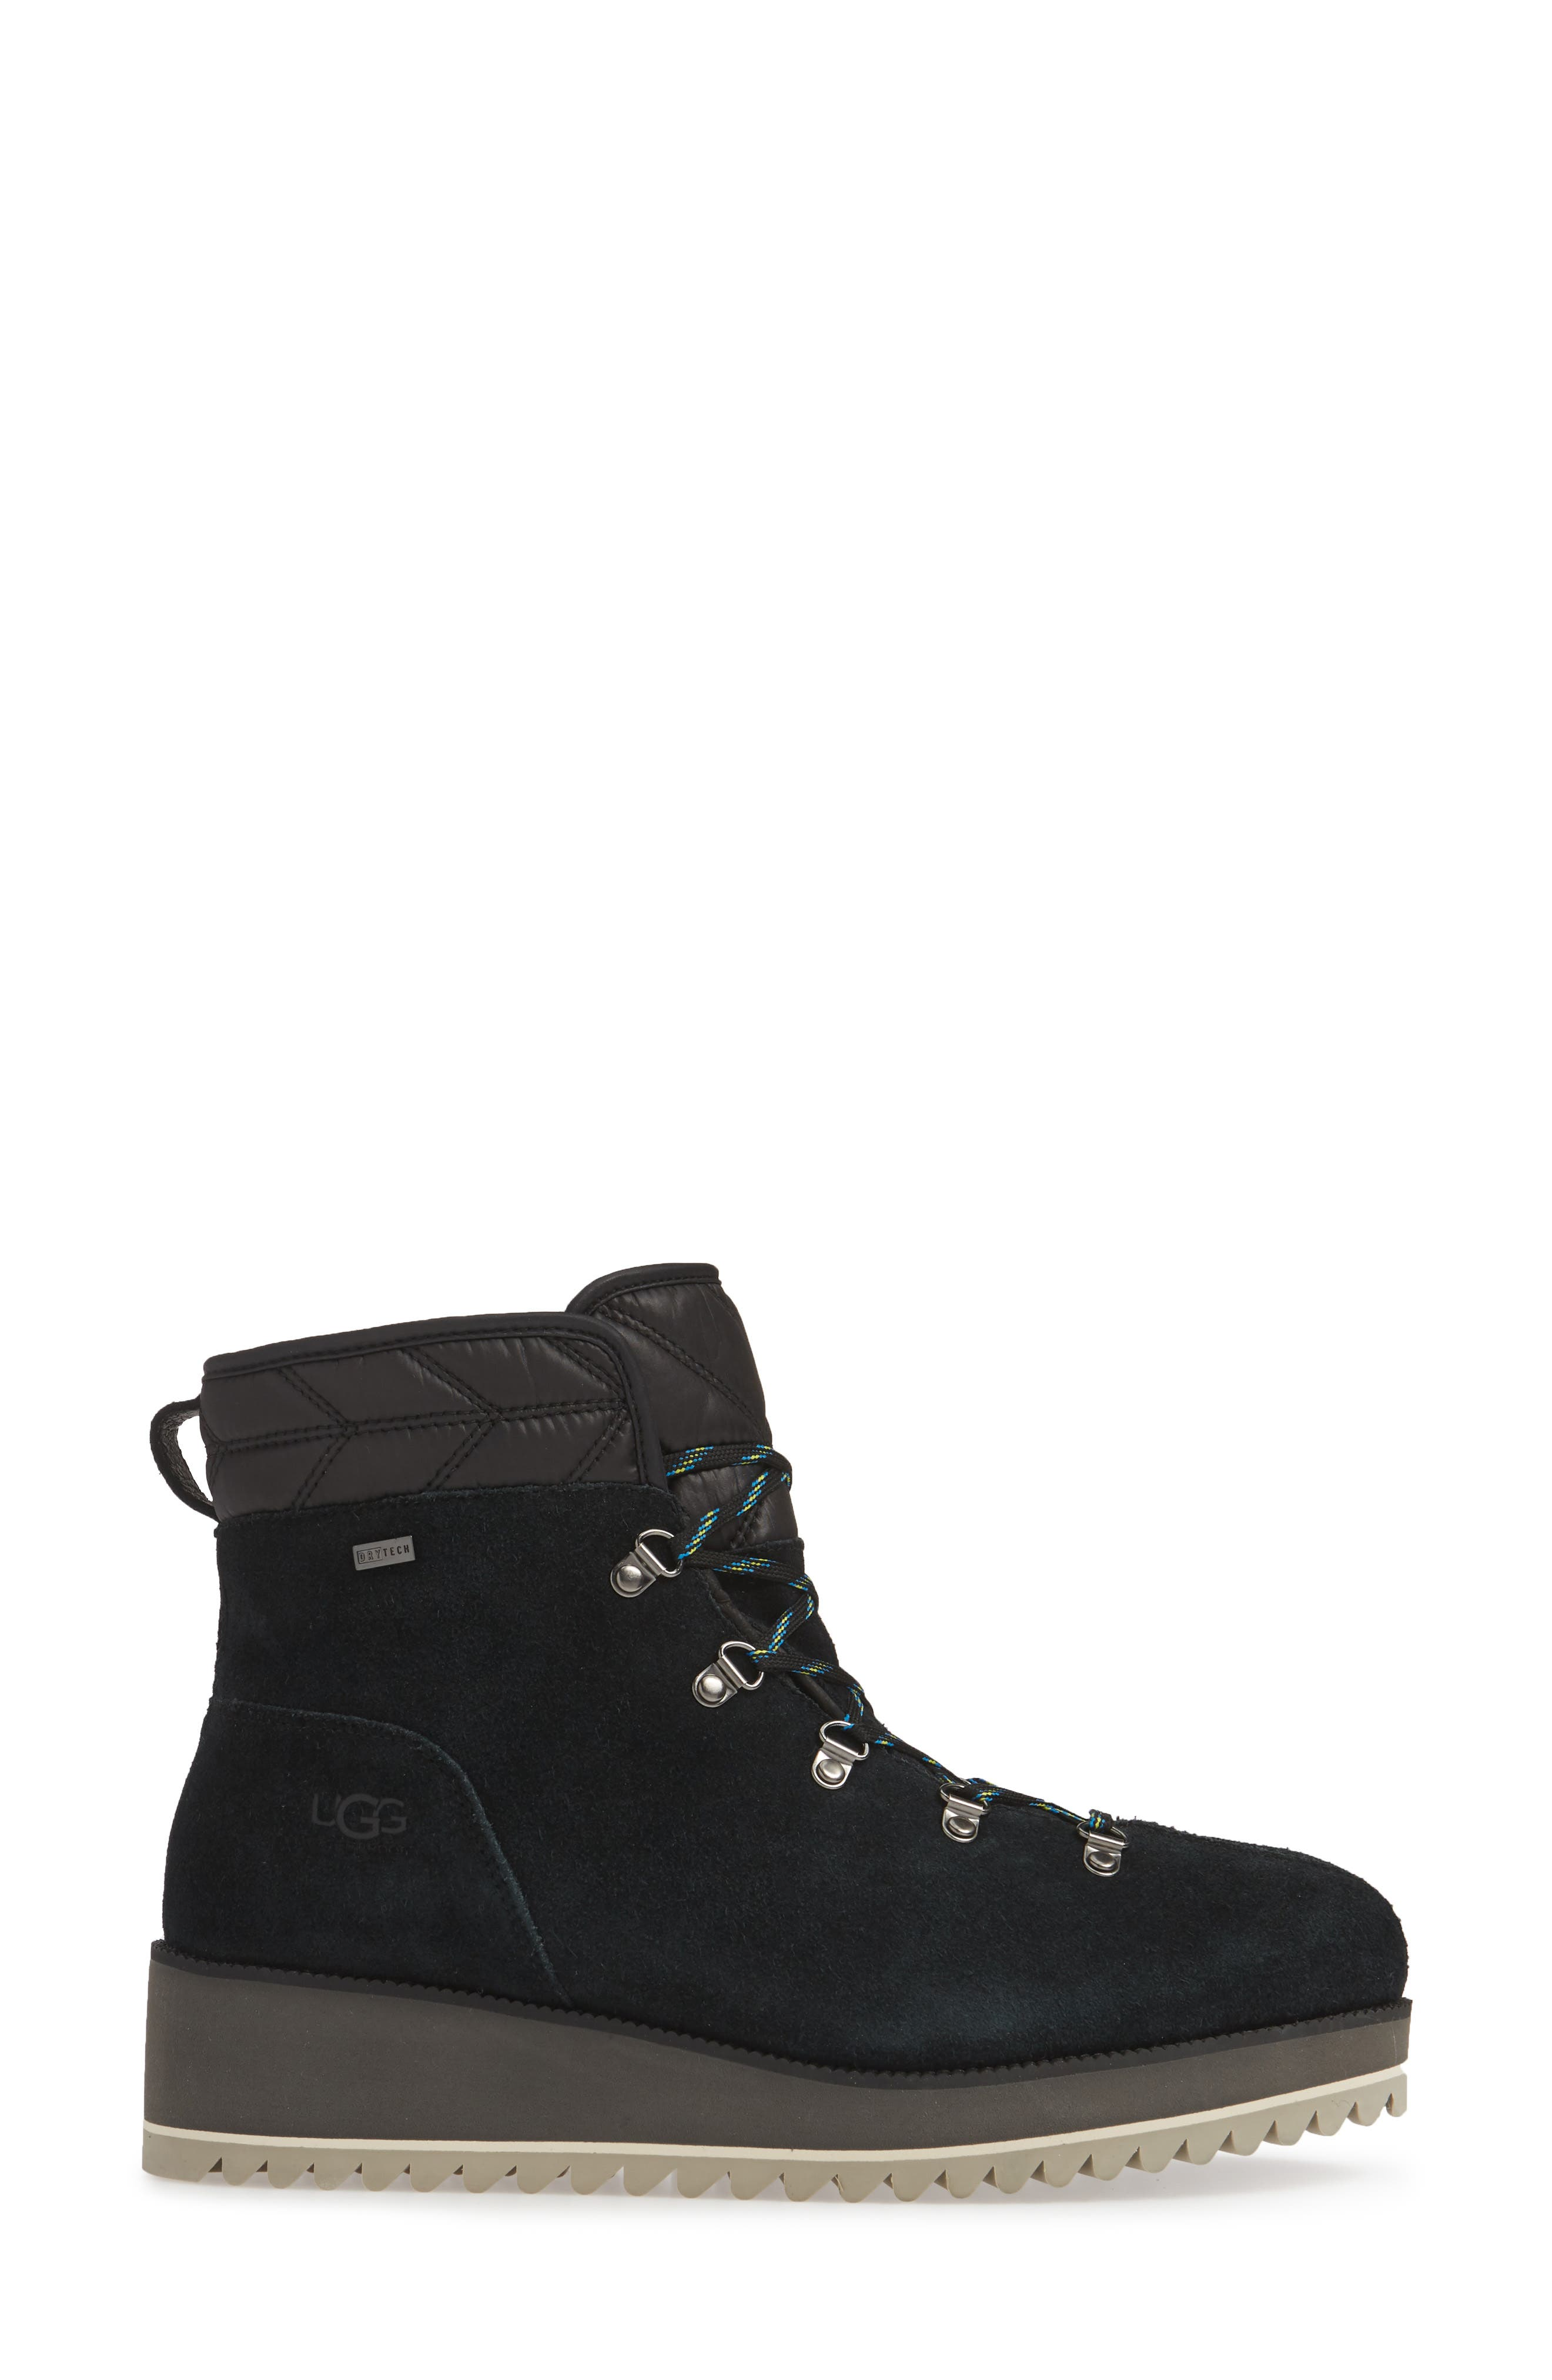 UGG<SUP>®</SUP>, Birch Waterproof Lace-Up Winter Bootie, Alternate thumbnail 3, color, BLACK